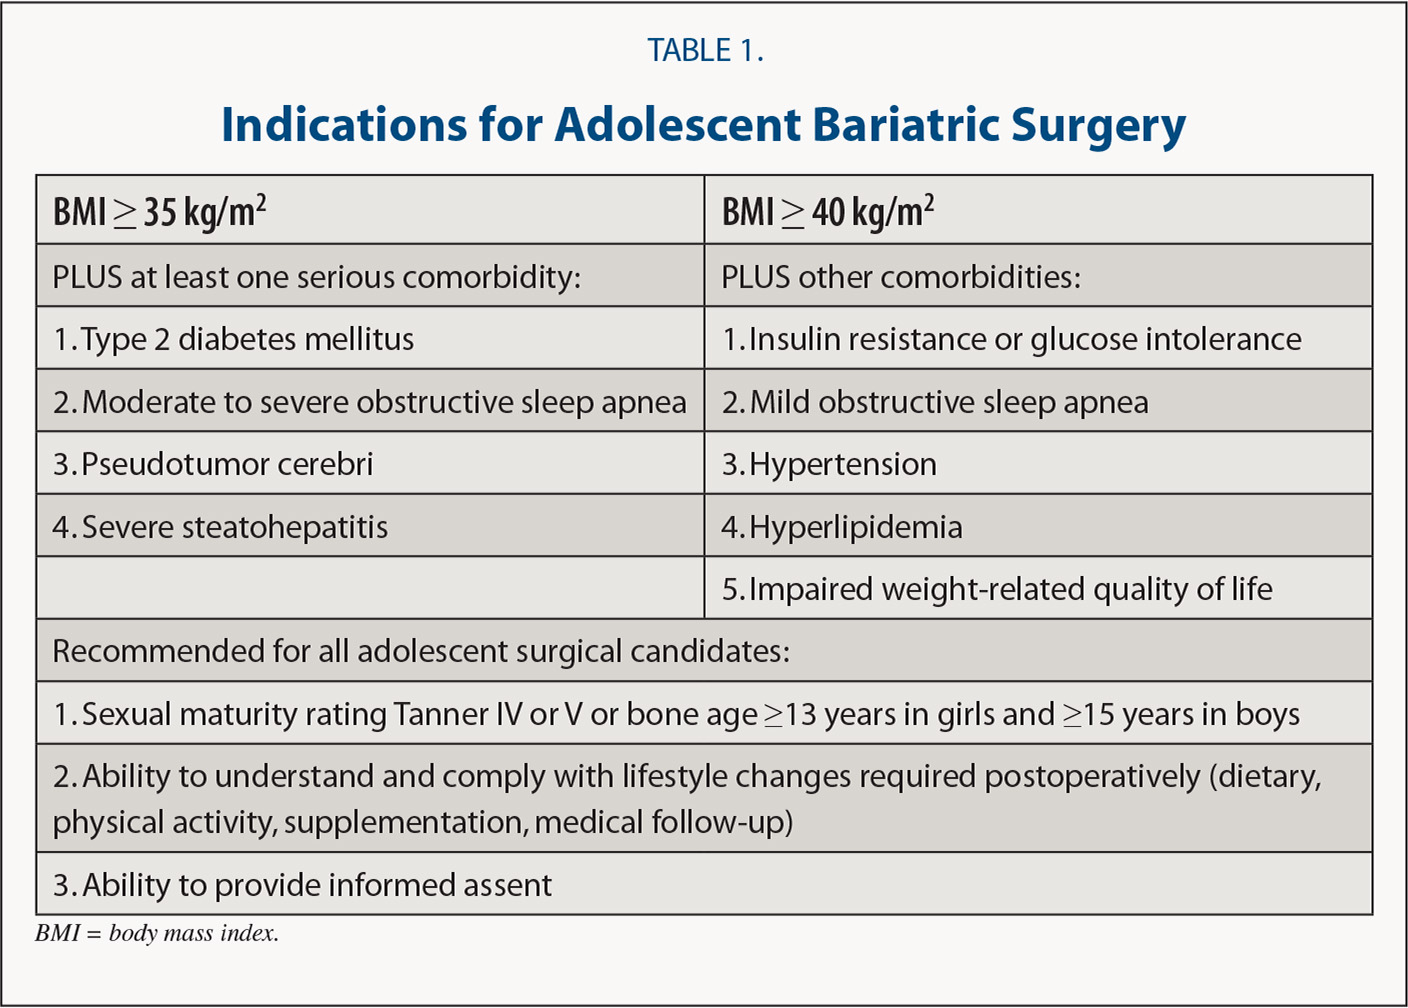 Indications for Adolescent Bariatric Surgery